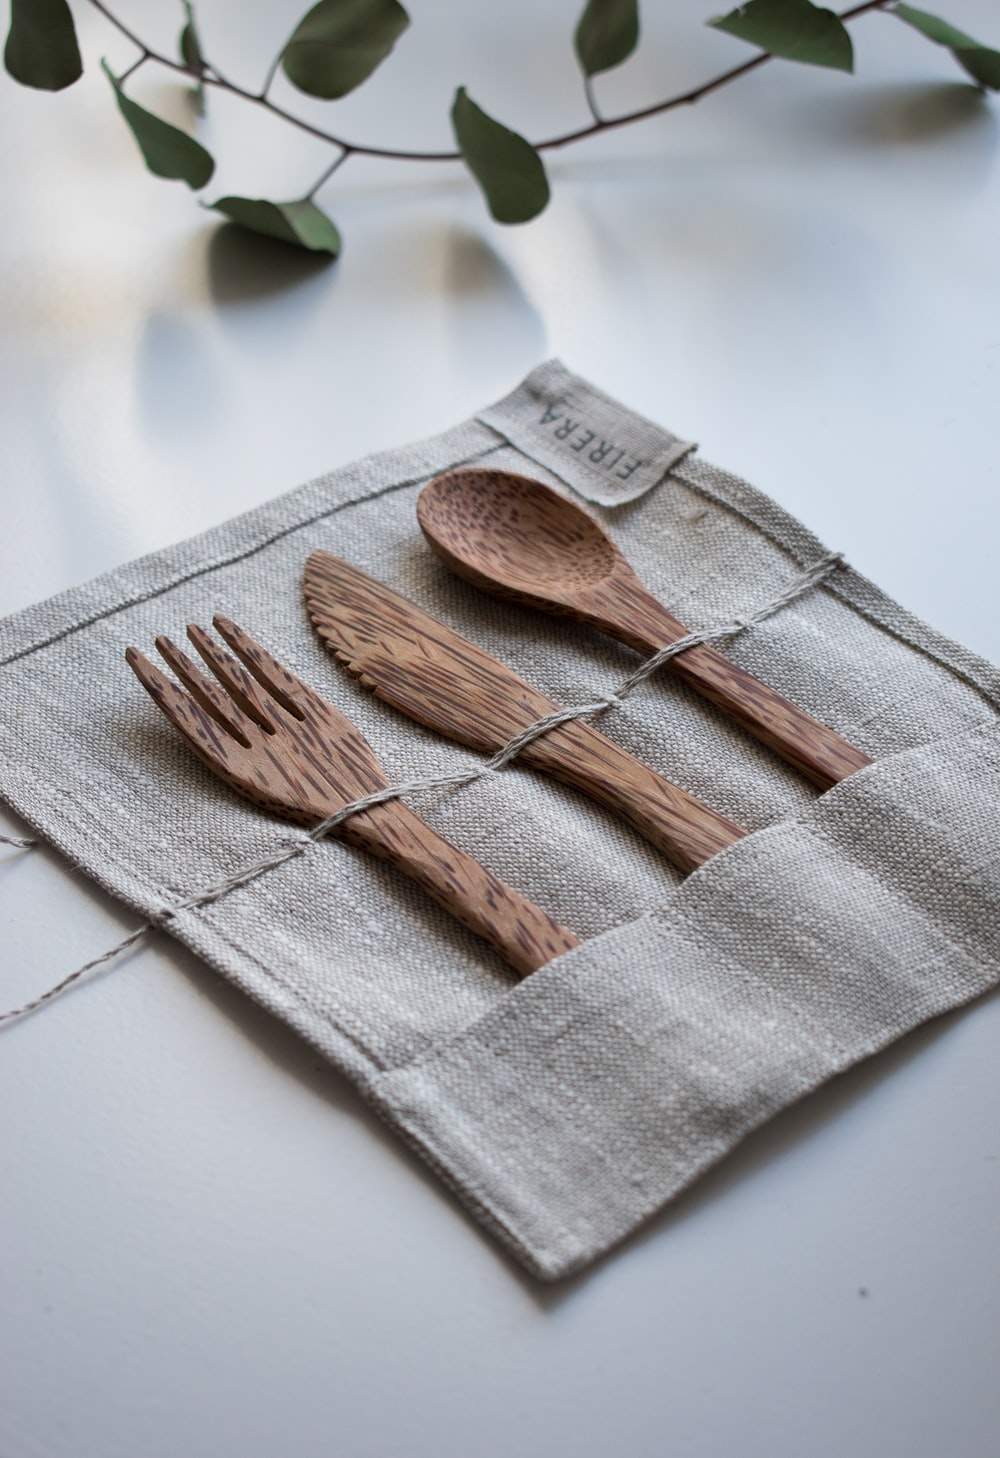 brown wooden fork, spoon, and knife on textile